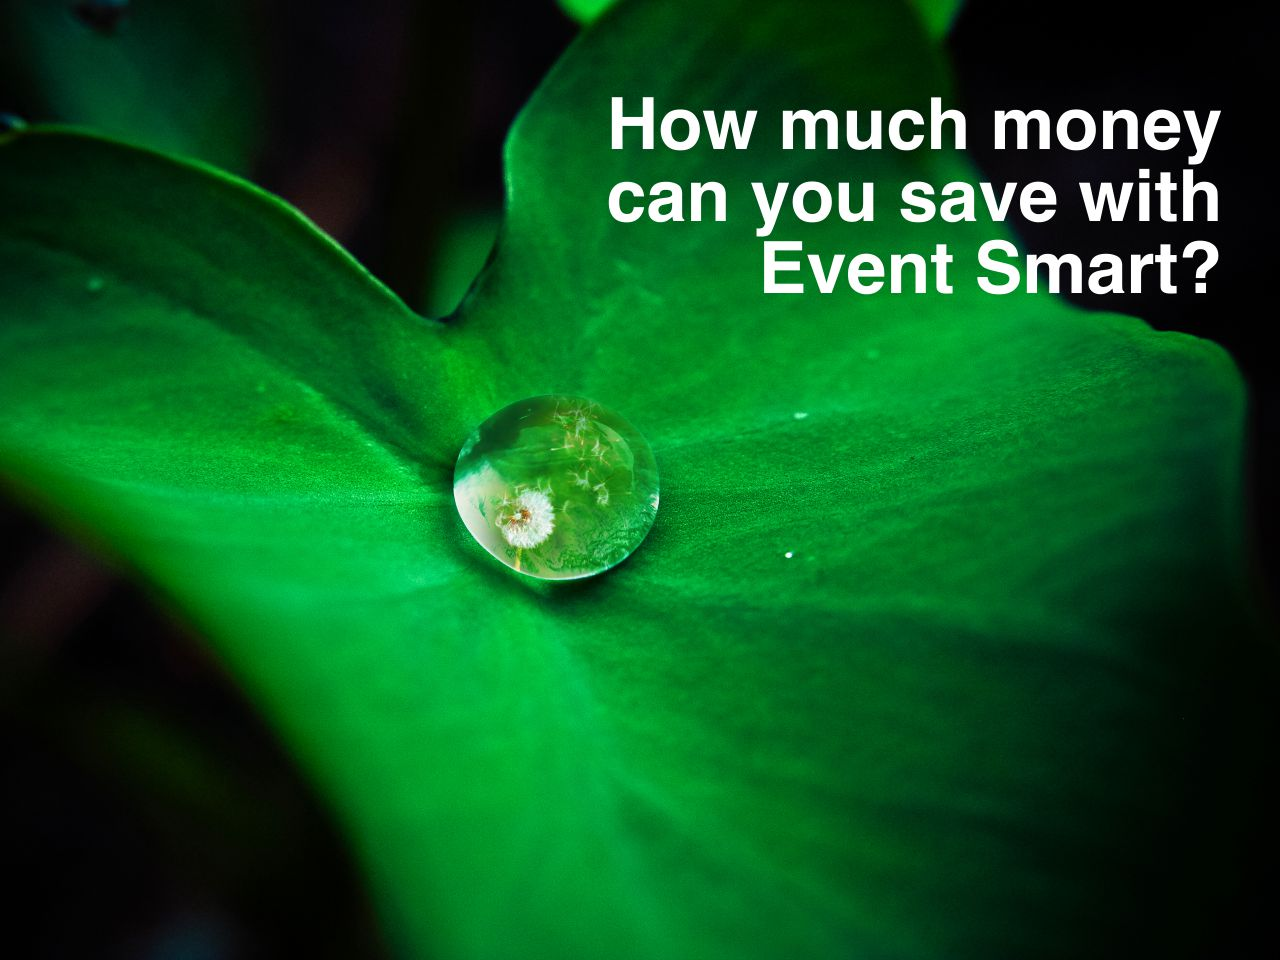 How Much Money Can You Save with Event Smart?